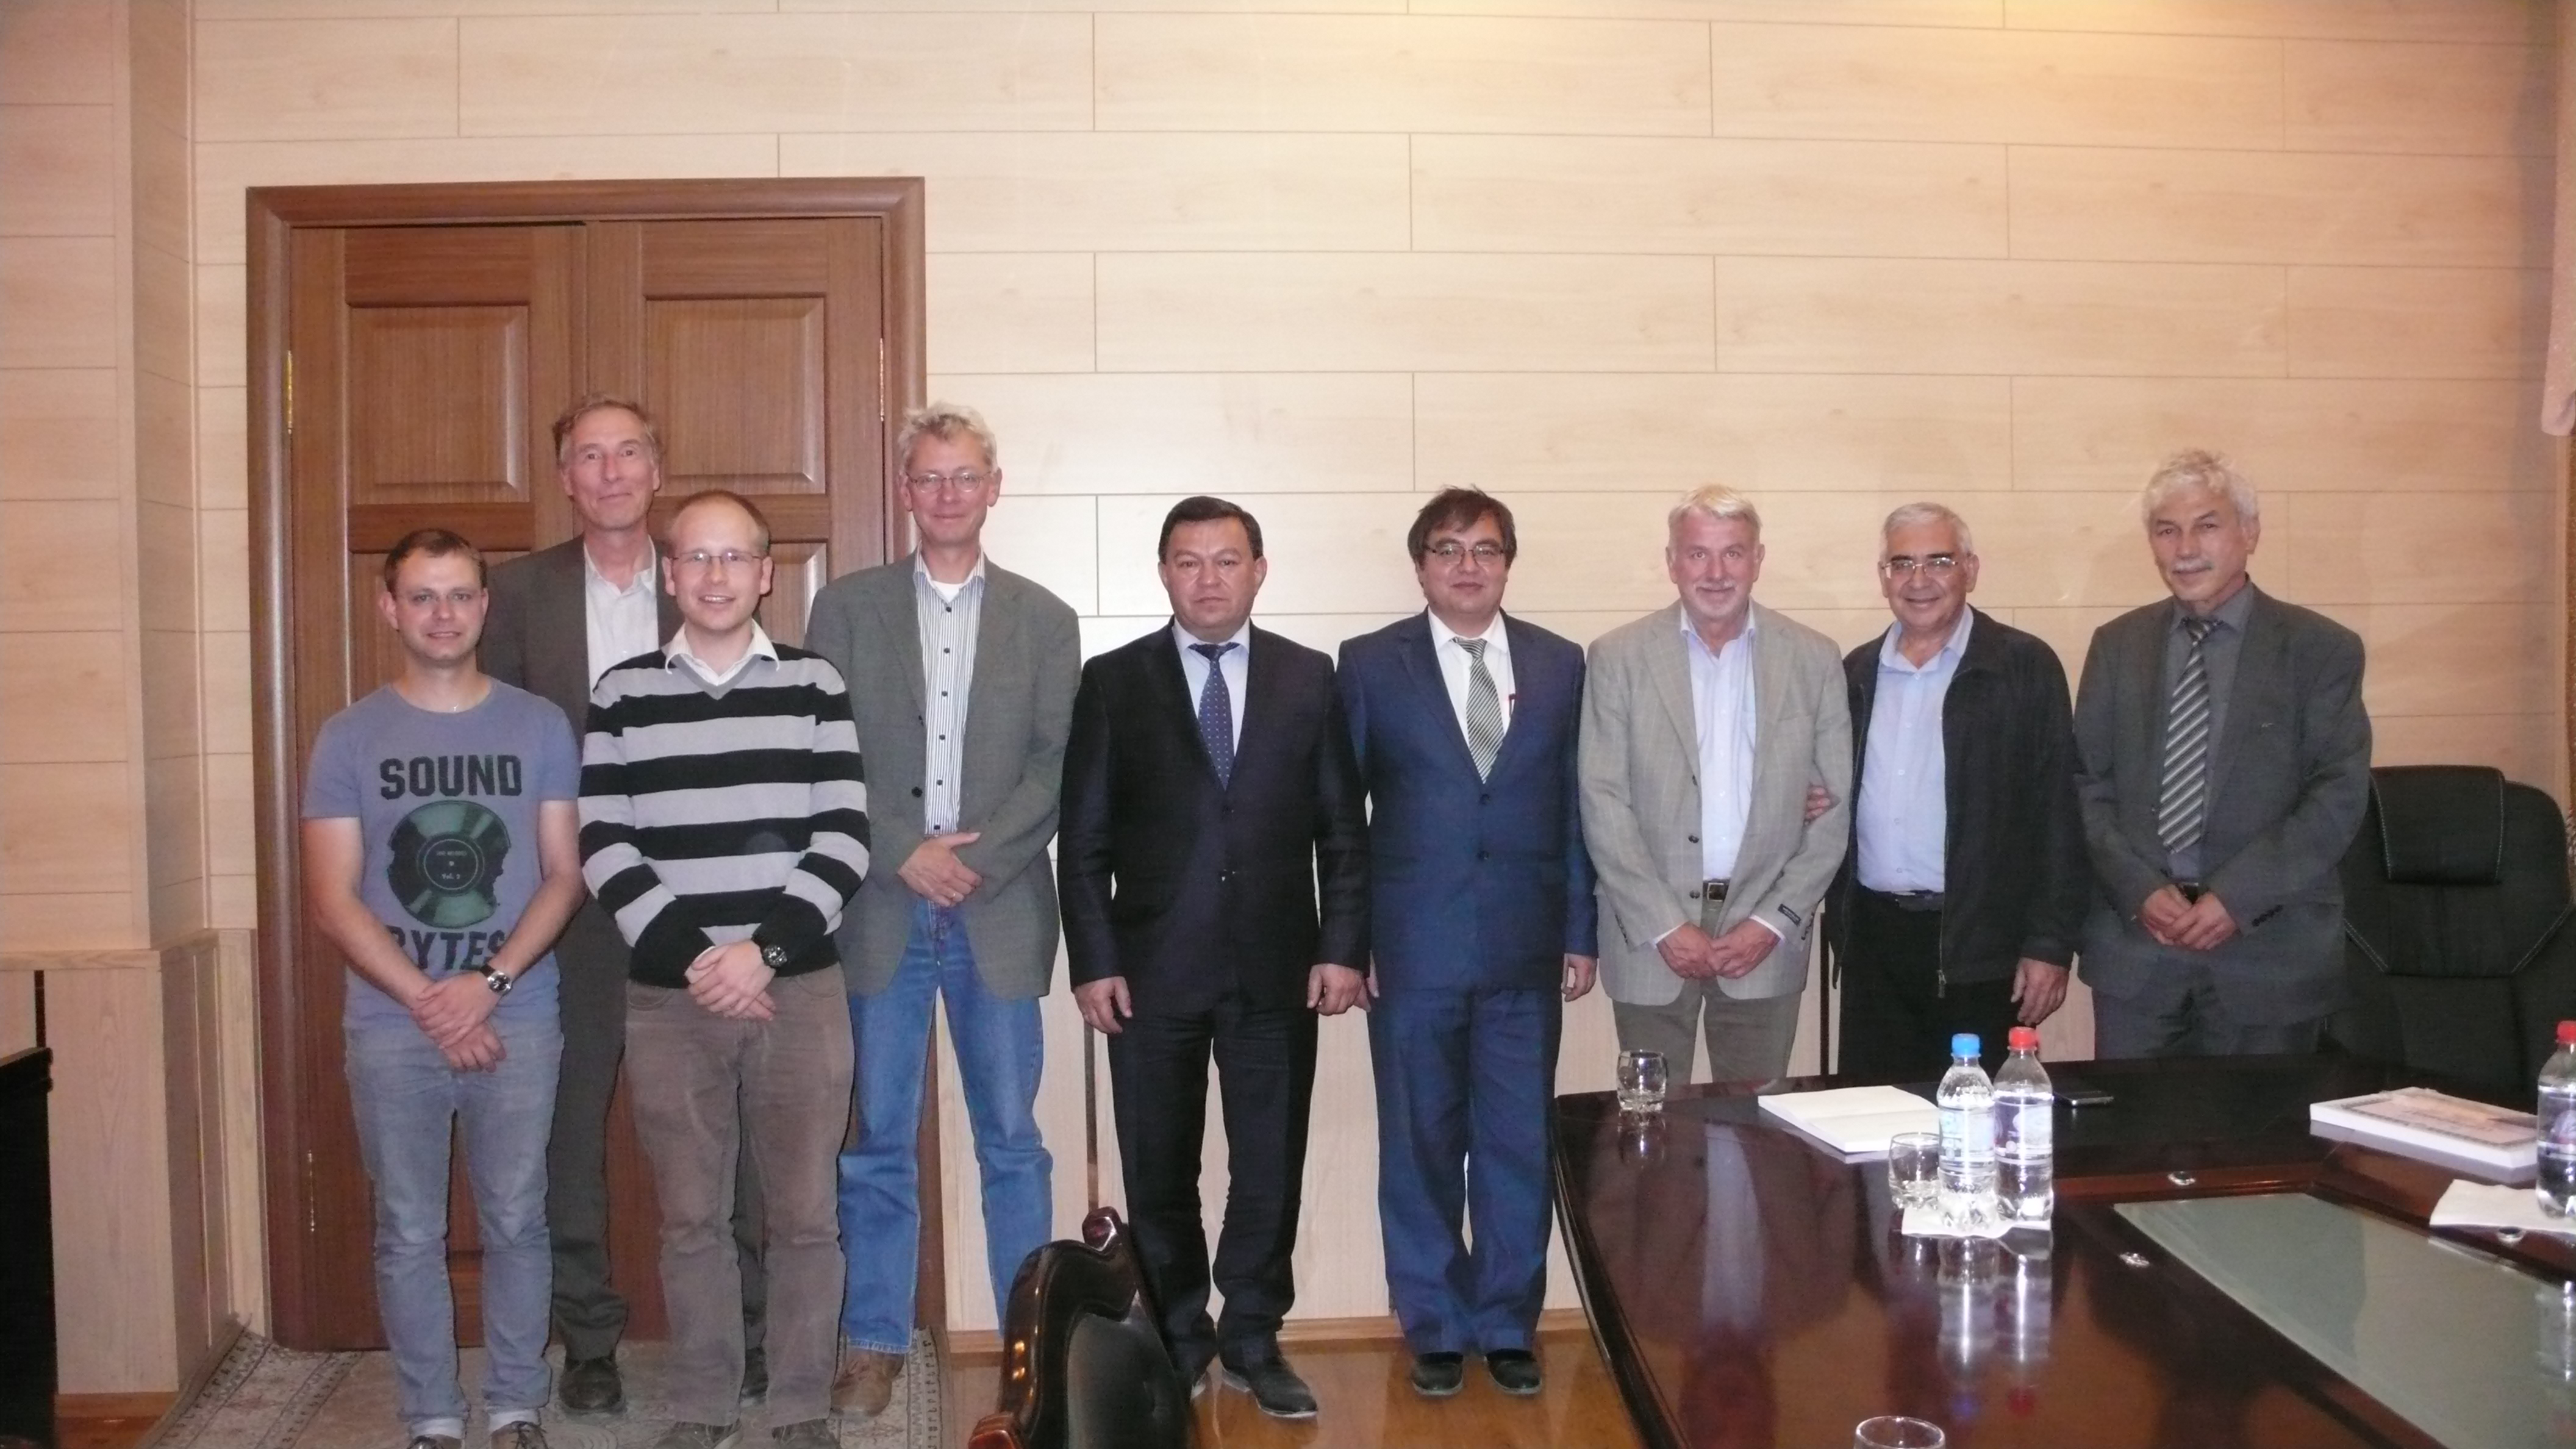 Meeting with the president of the Academy of Sciences of Tajikistan, Prof. Dr. Farhod Rahimi. The scientists discussed the CADEX project and possible further cooperations.